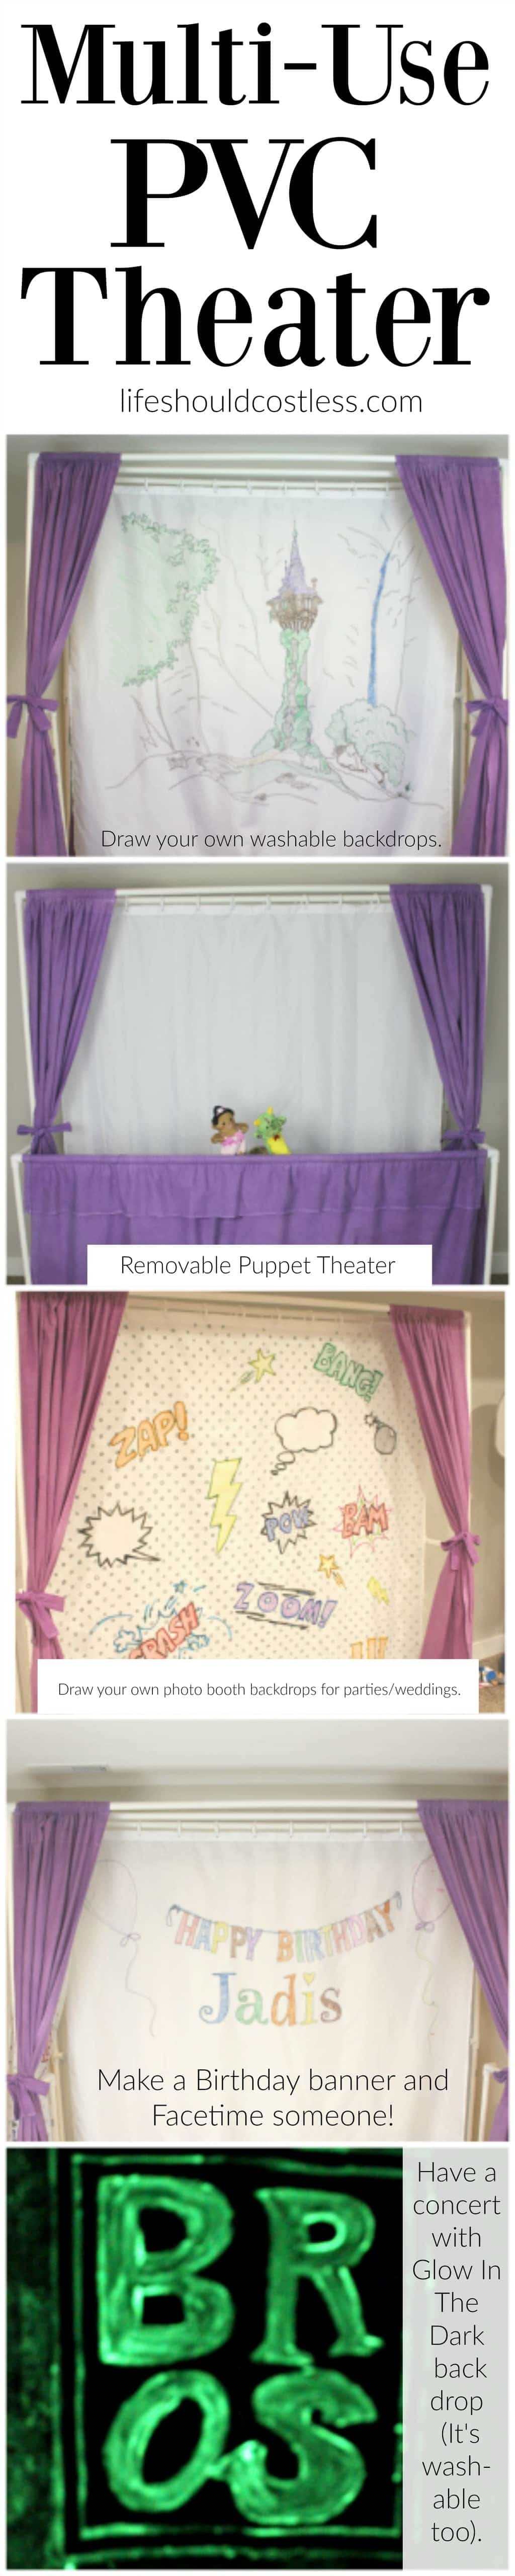 "Multi-Use PVC Theater with washable and glow-in-the-dark backdrop options. The ""thneed"" of PVC theaters! It is so veratile that you can do almost anything. Best PVC project for kids."